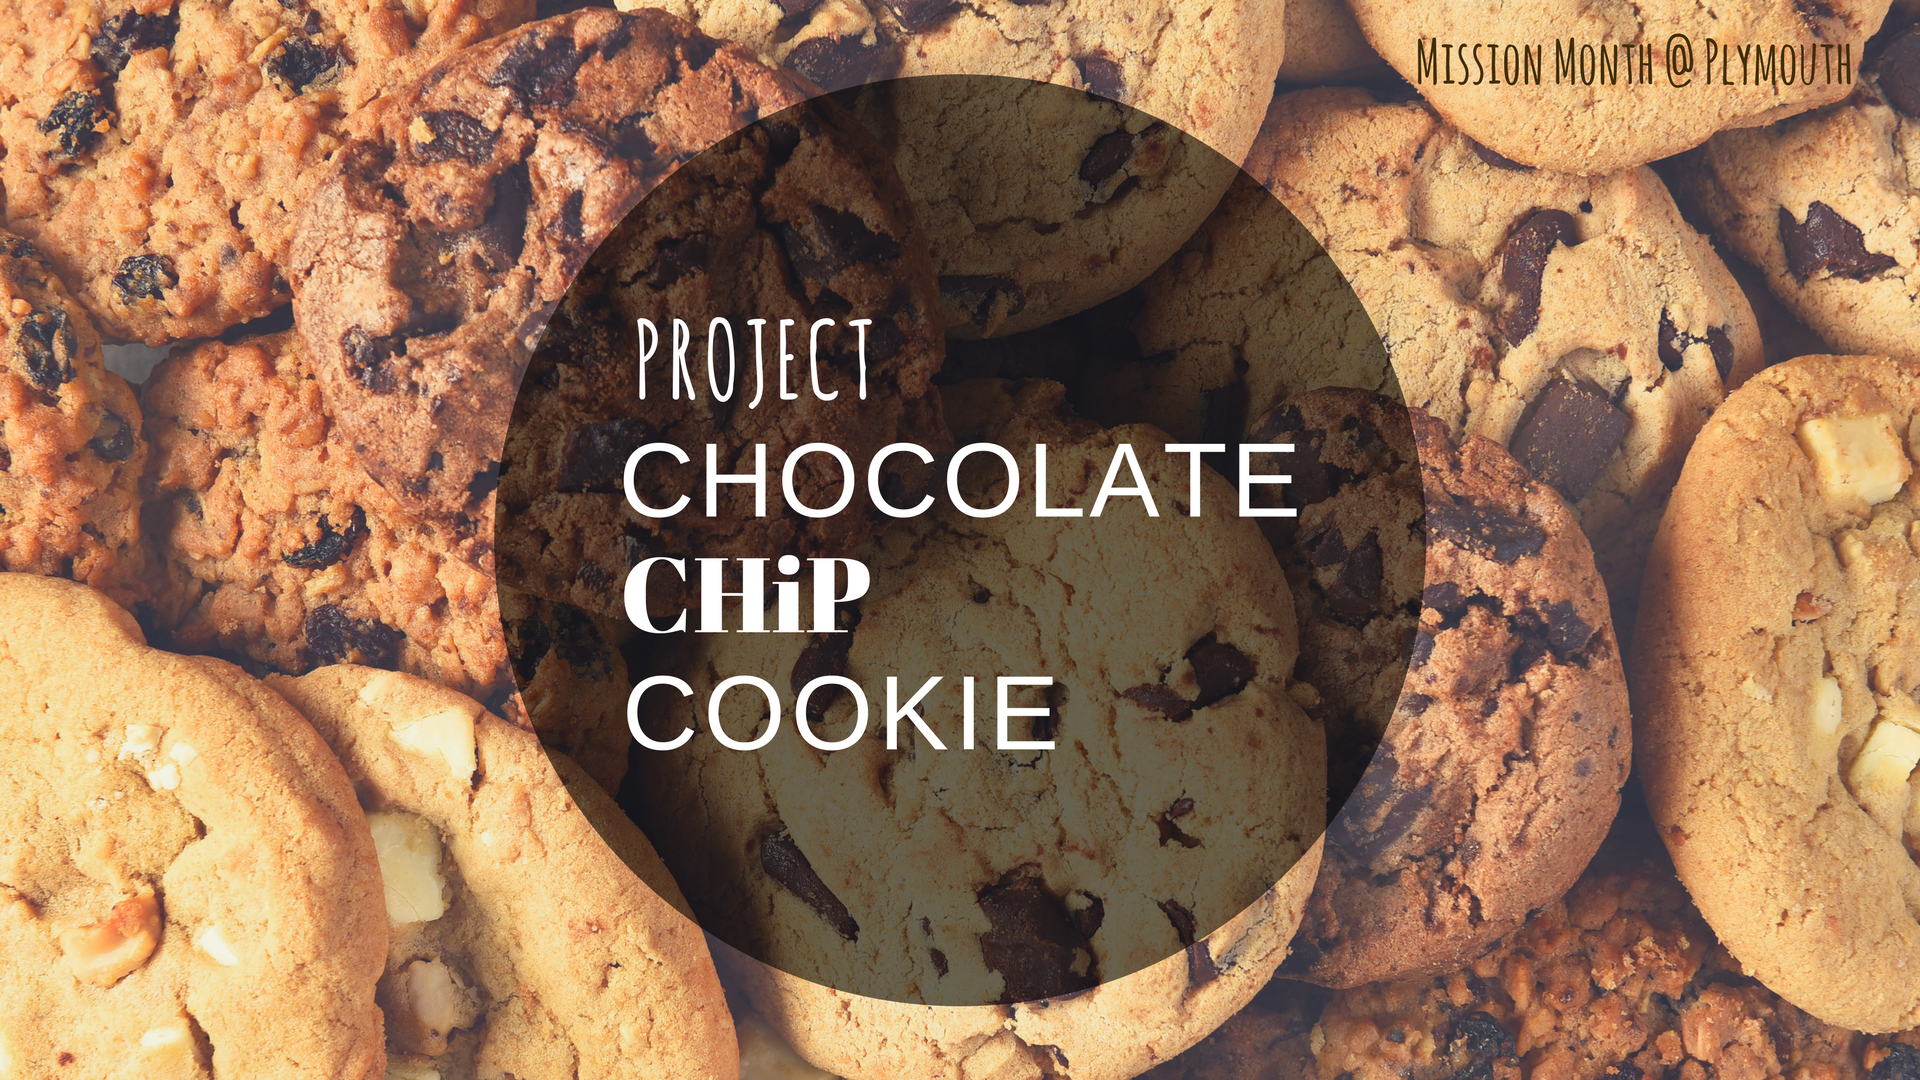 PROJECT: Chocolate CHiP Cookie - During the month of May, our Sunday School children on both Wednesdays and Sundays will be baking chocolate chip cookies for the homeless people served by CHiPS (Christian Help in Park Slope) and it's soup kitchen. We were told by the CHiPS director that they do not have funds to serve dessert - that's where we come in! The cookies will be delivered weekly and put in each person's lunch bag as a welcome treat.